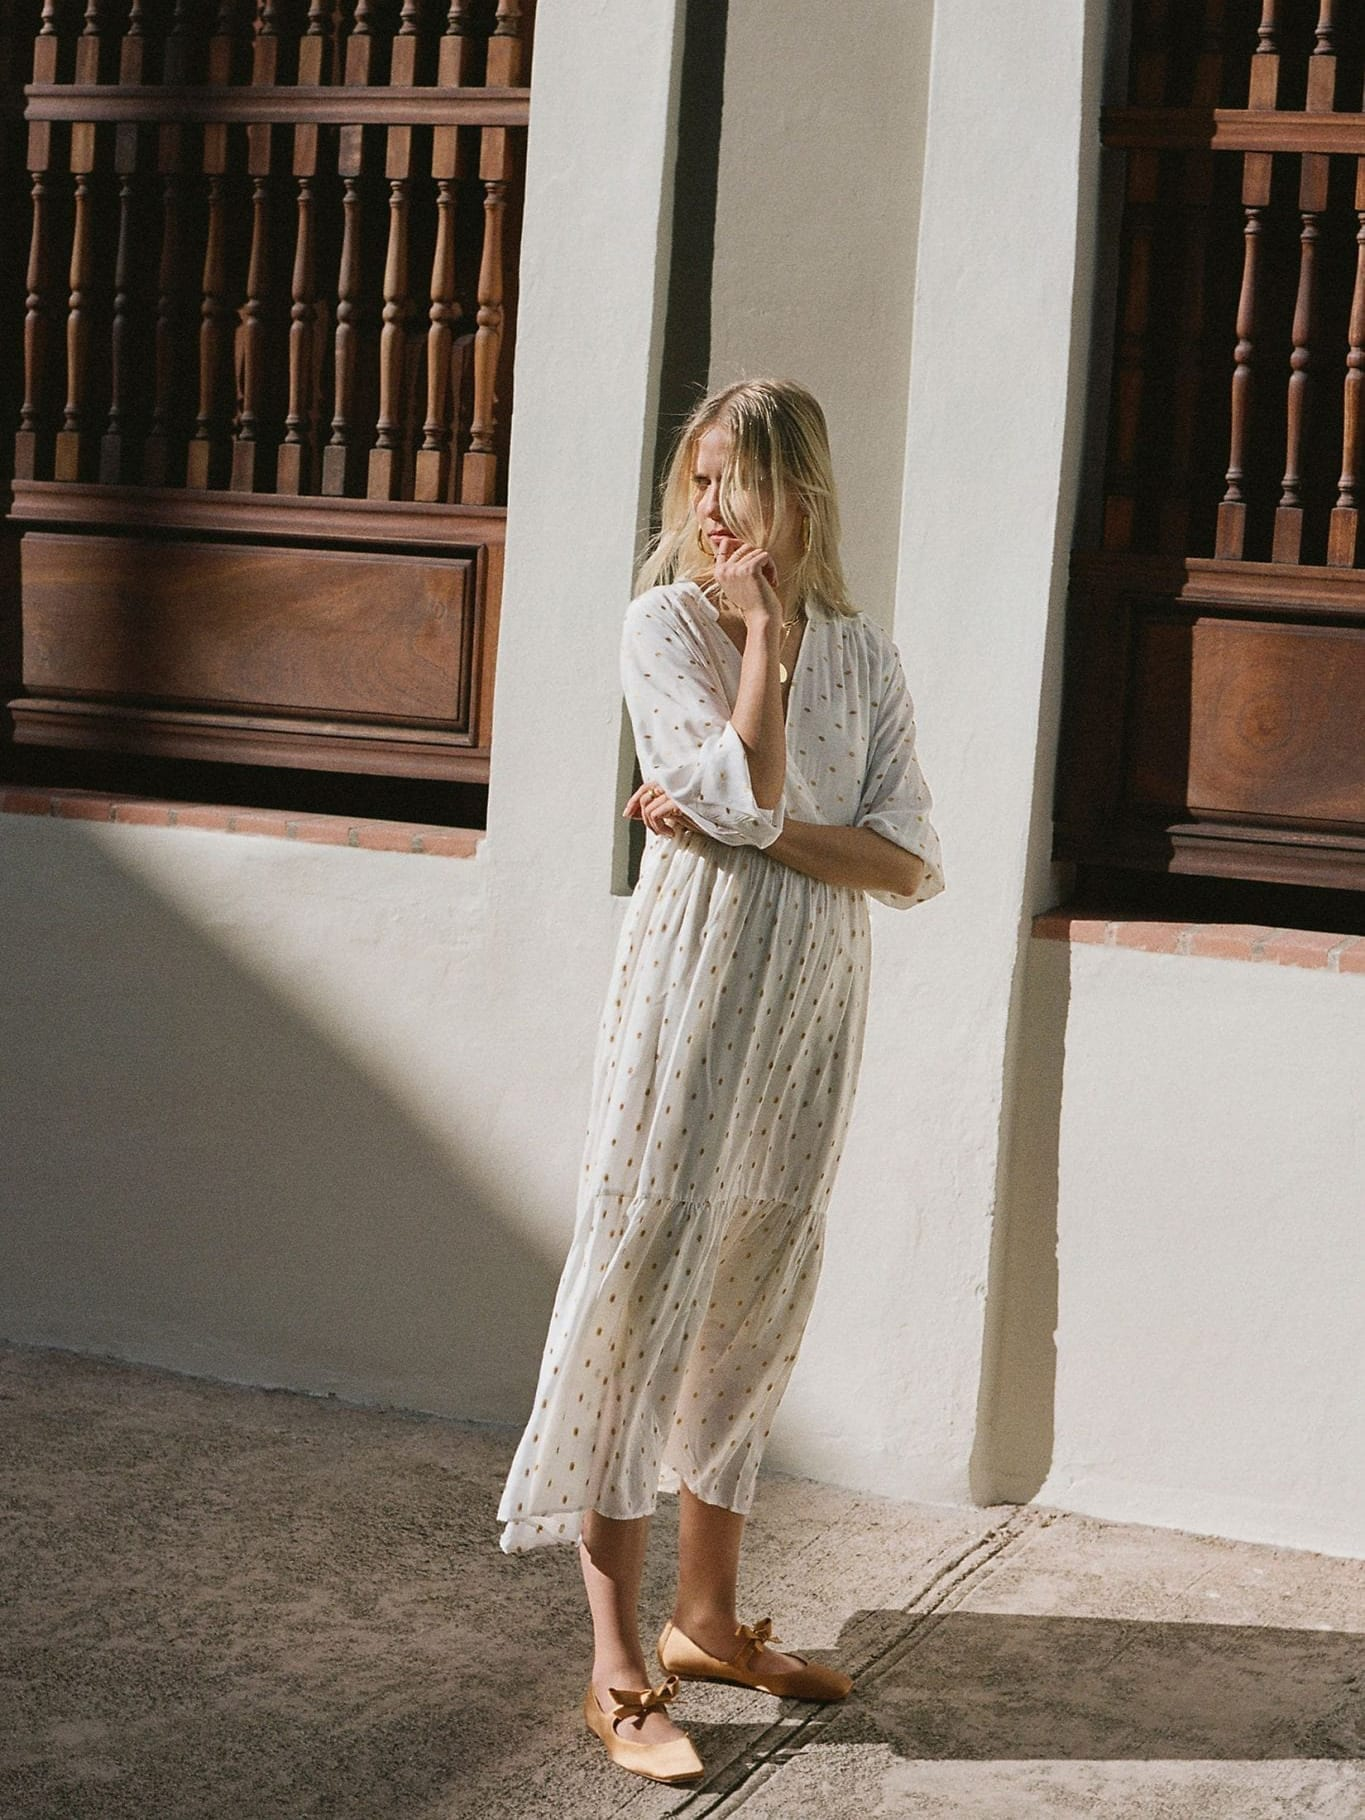 Boho Dresses To Soak Up The Sun